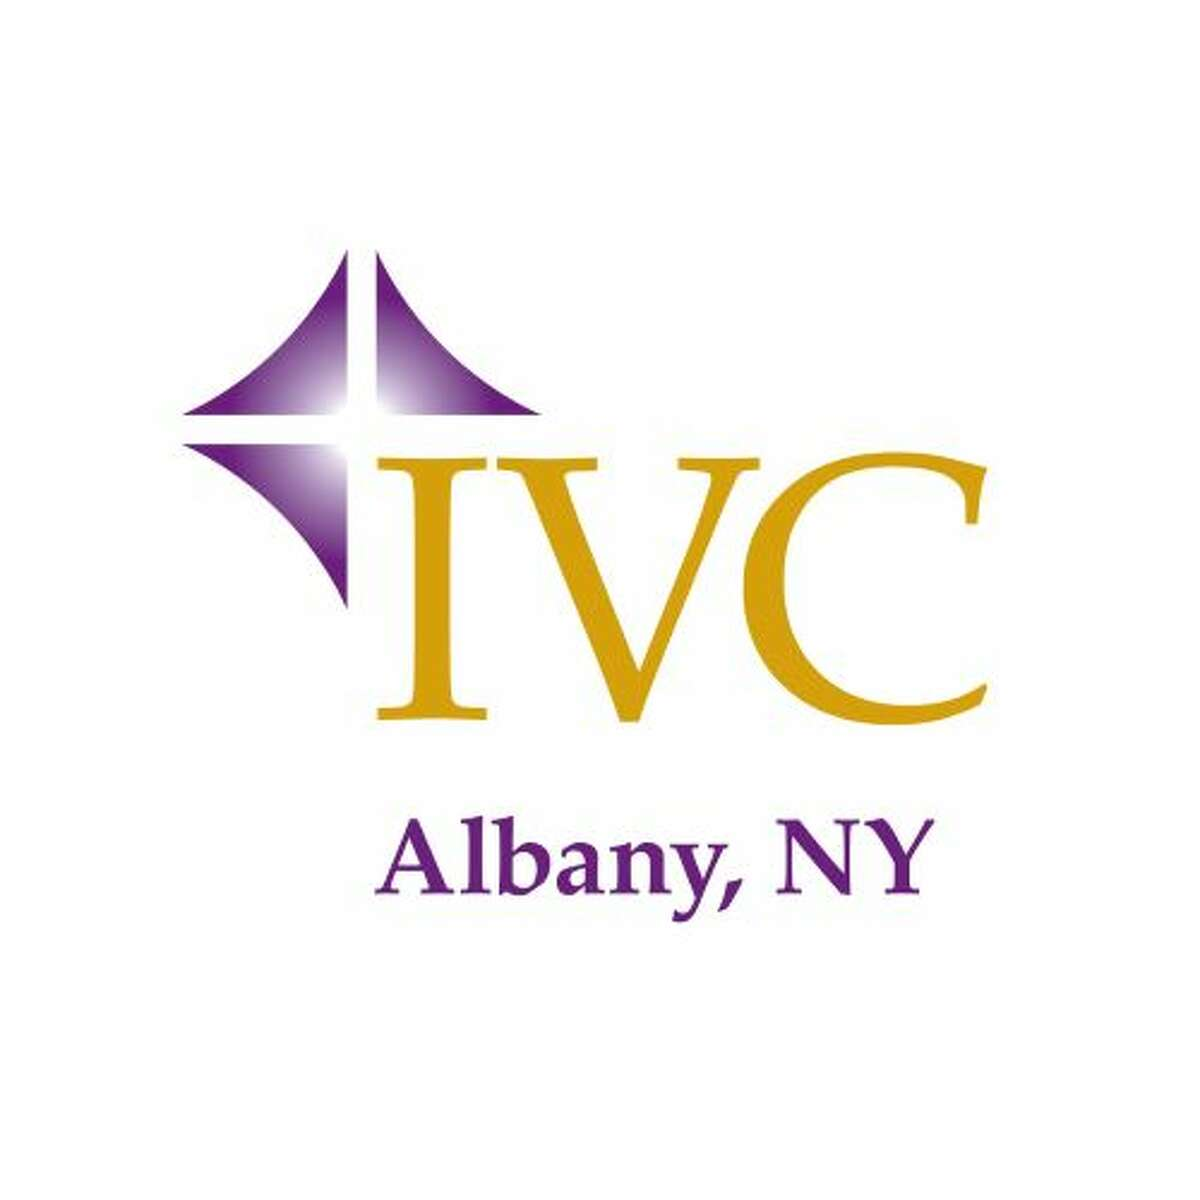 This is the logo for the local chapter of the Ignatian Volunteer Corps composed of professionals who use their skills a few days each month for charities.